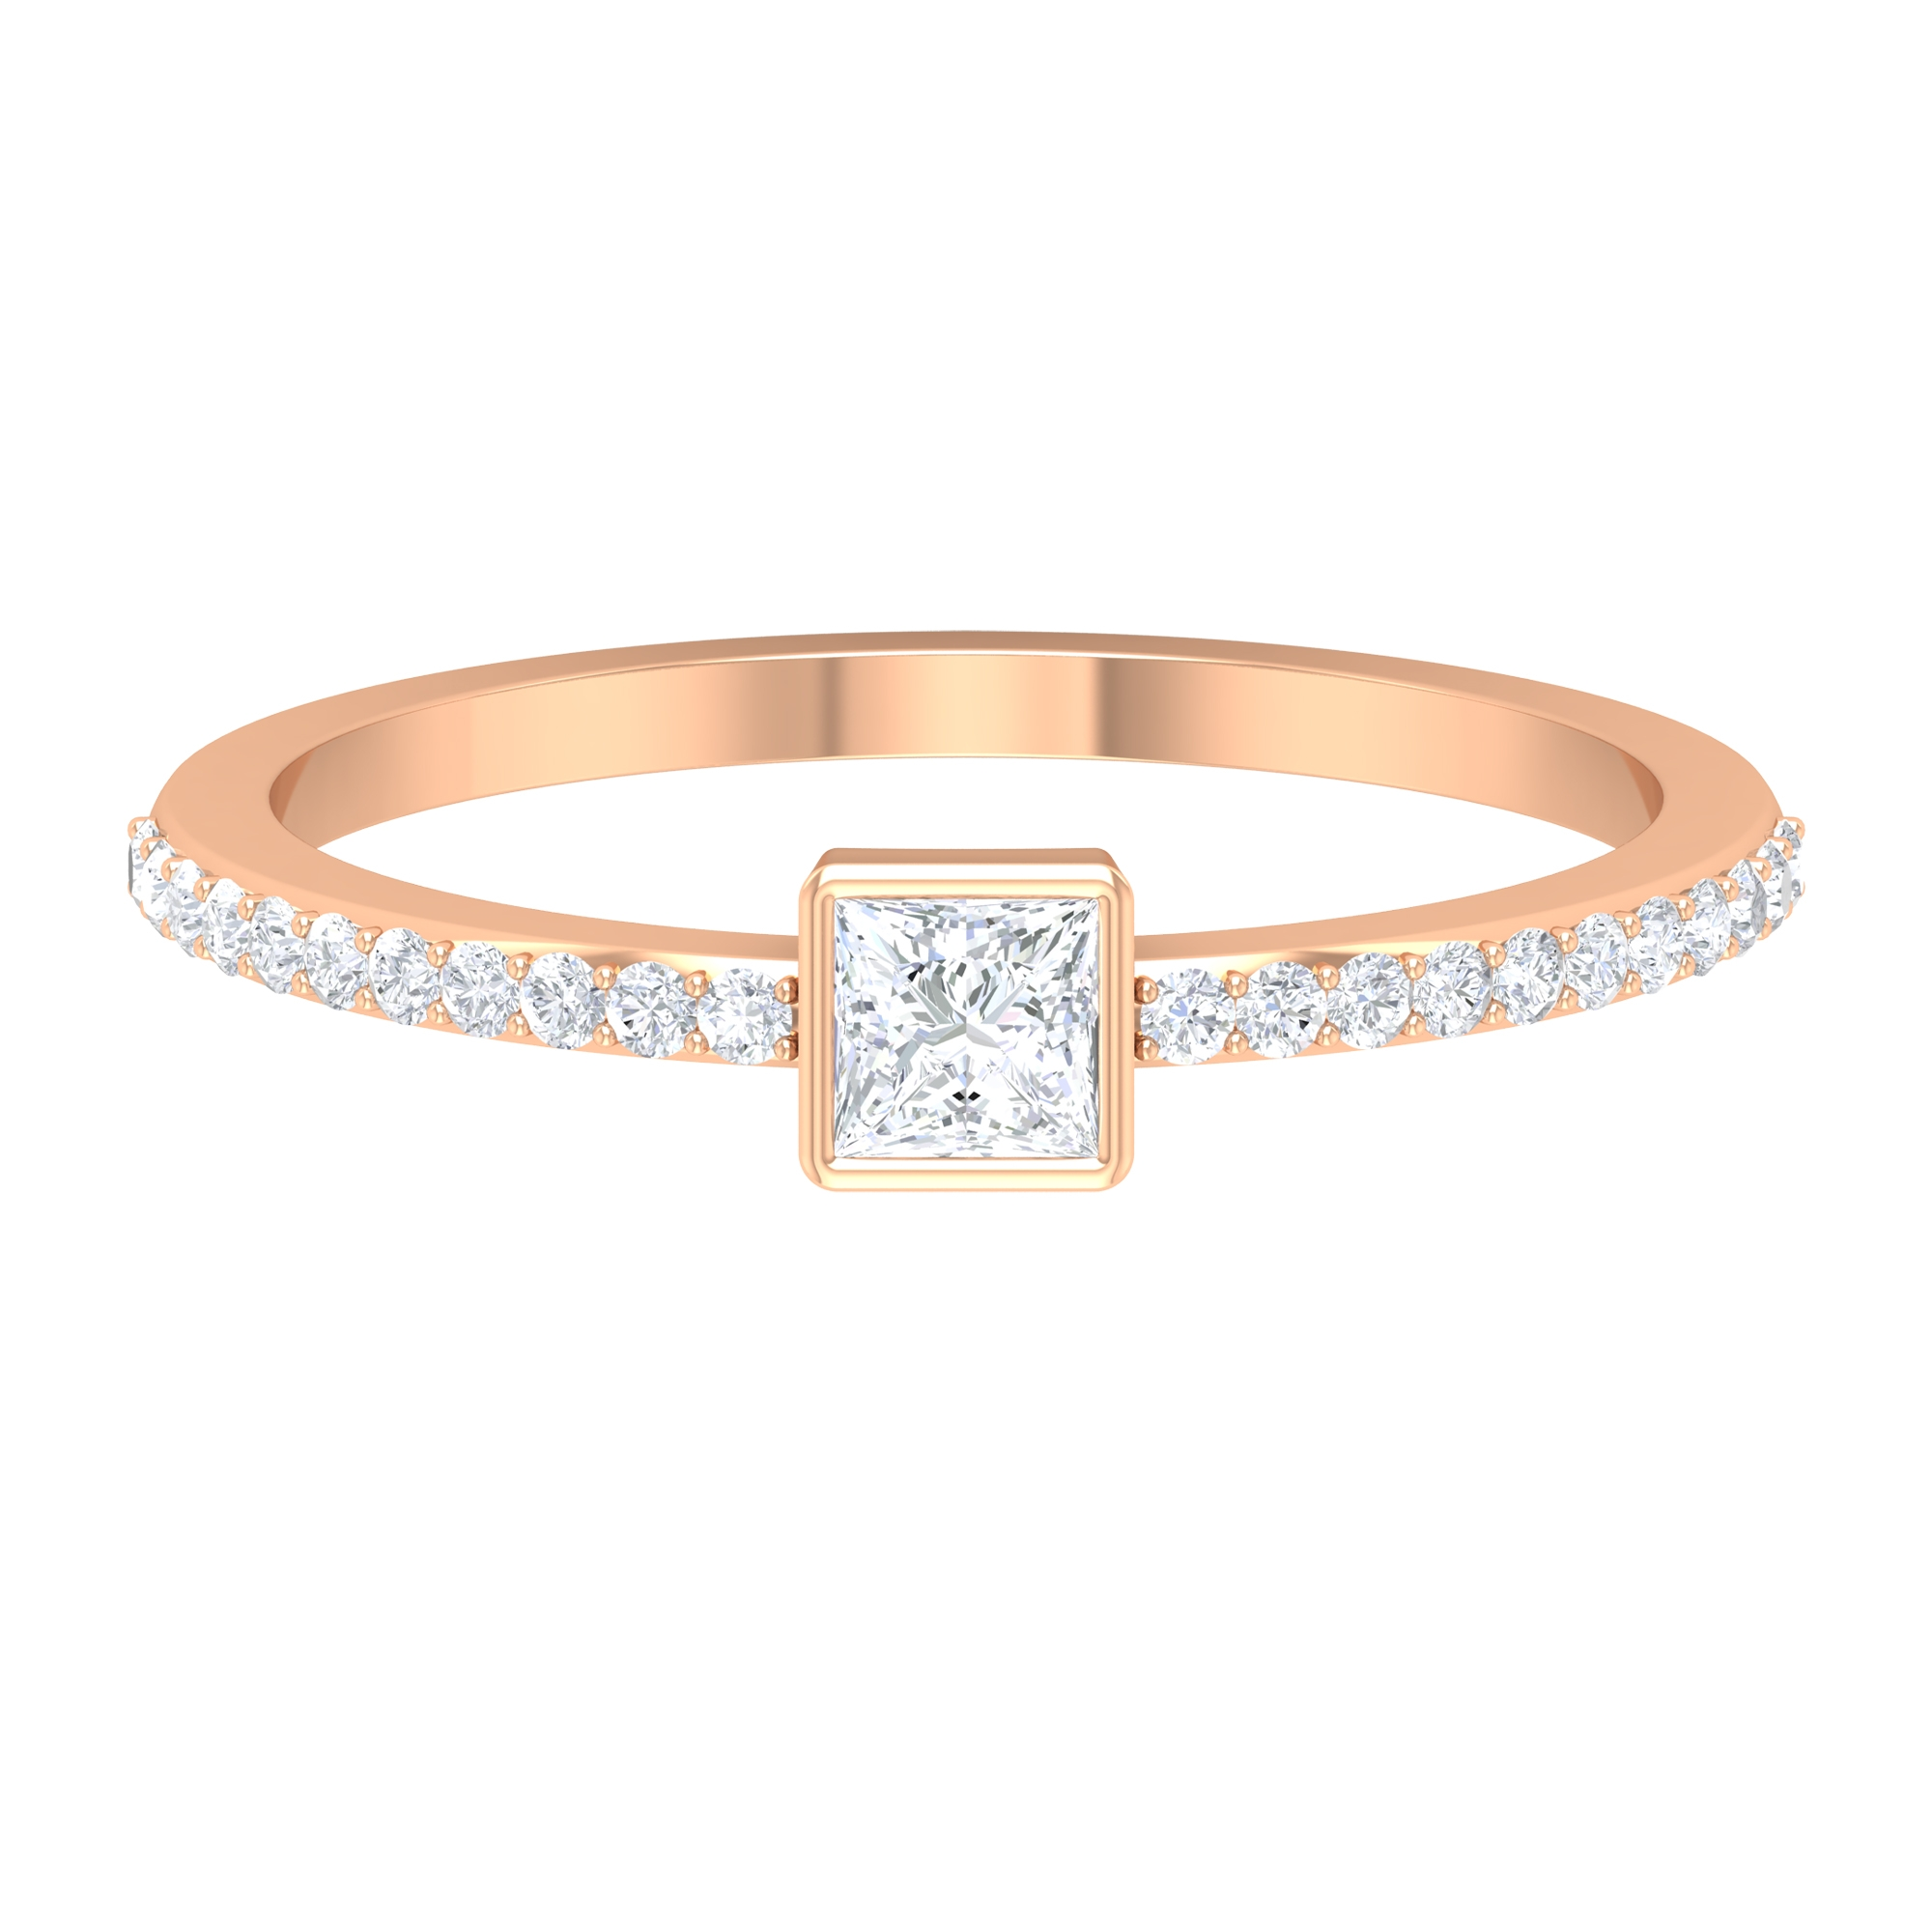 Bezel Set 0.50 CT Princess Cut Diamond Solitaire Ring with Surface Prong Set Side Stones